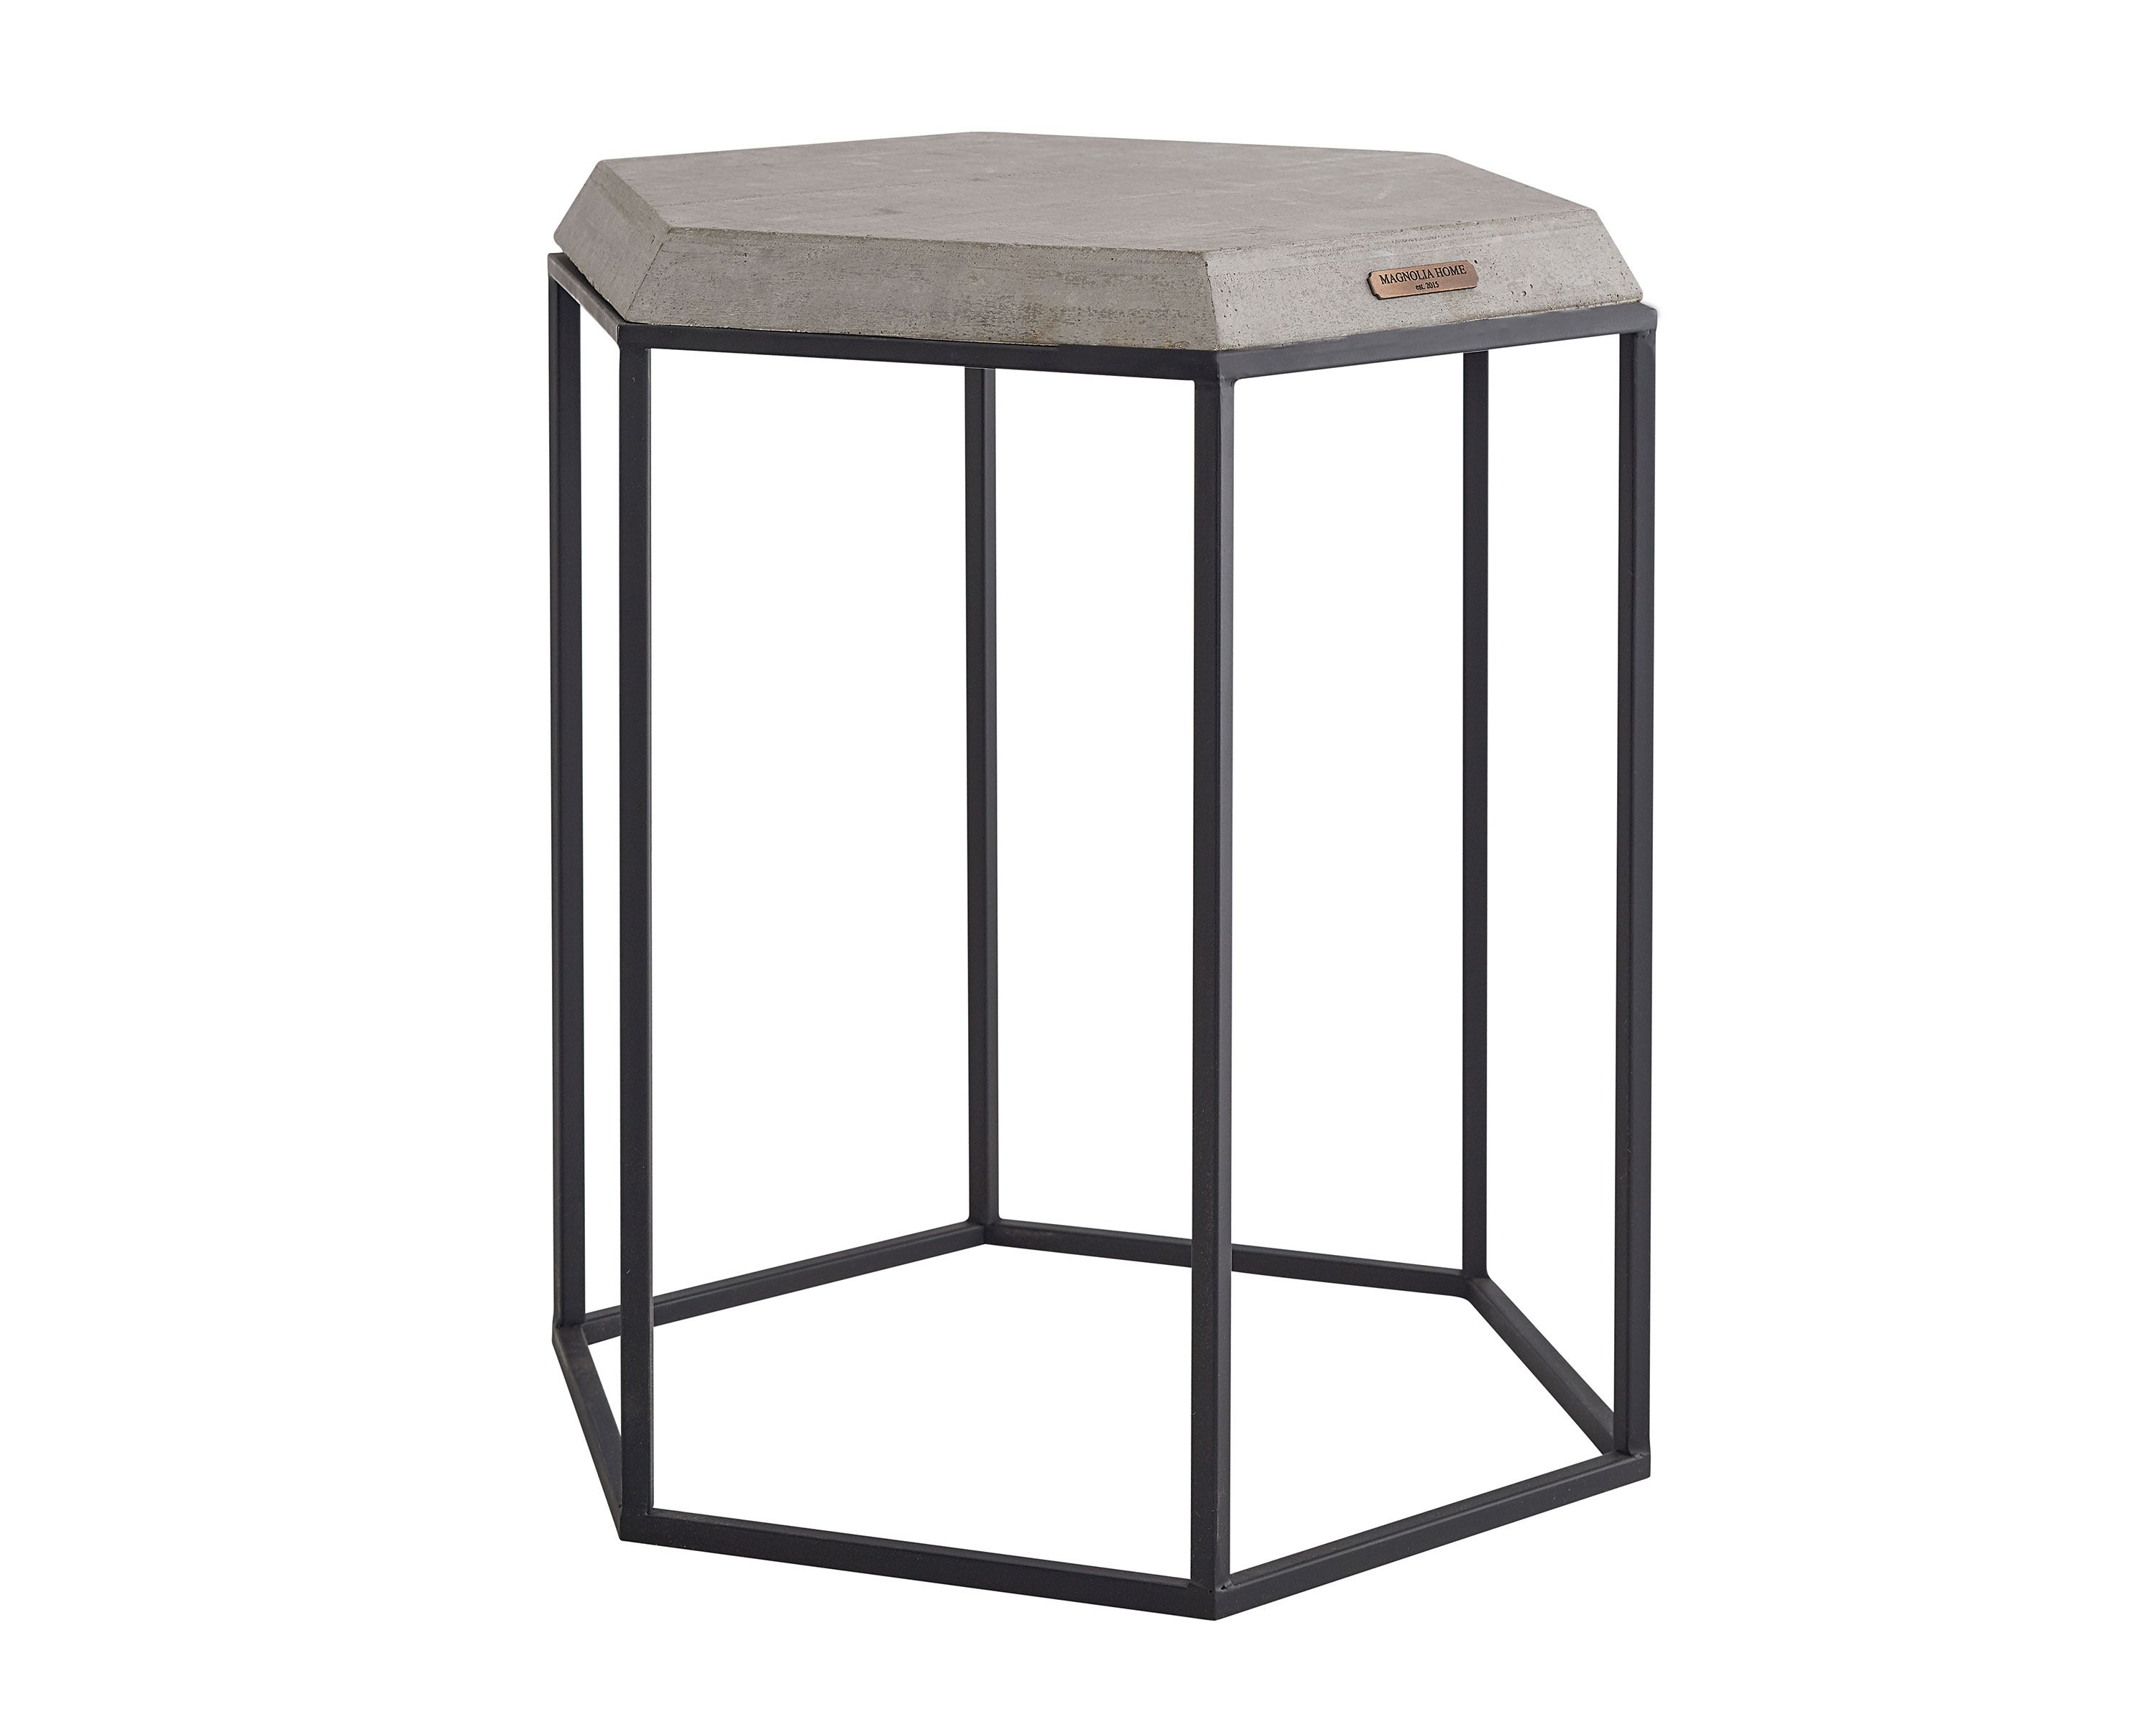 metal hexagon table with cement top magnolia home outdoor concrete accent the perfect blend and creates contemporary industrial side chic urban edge lounge room ikea storage bins